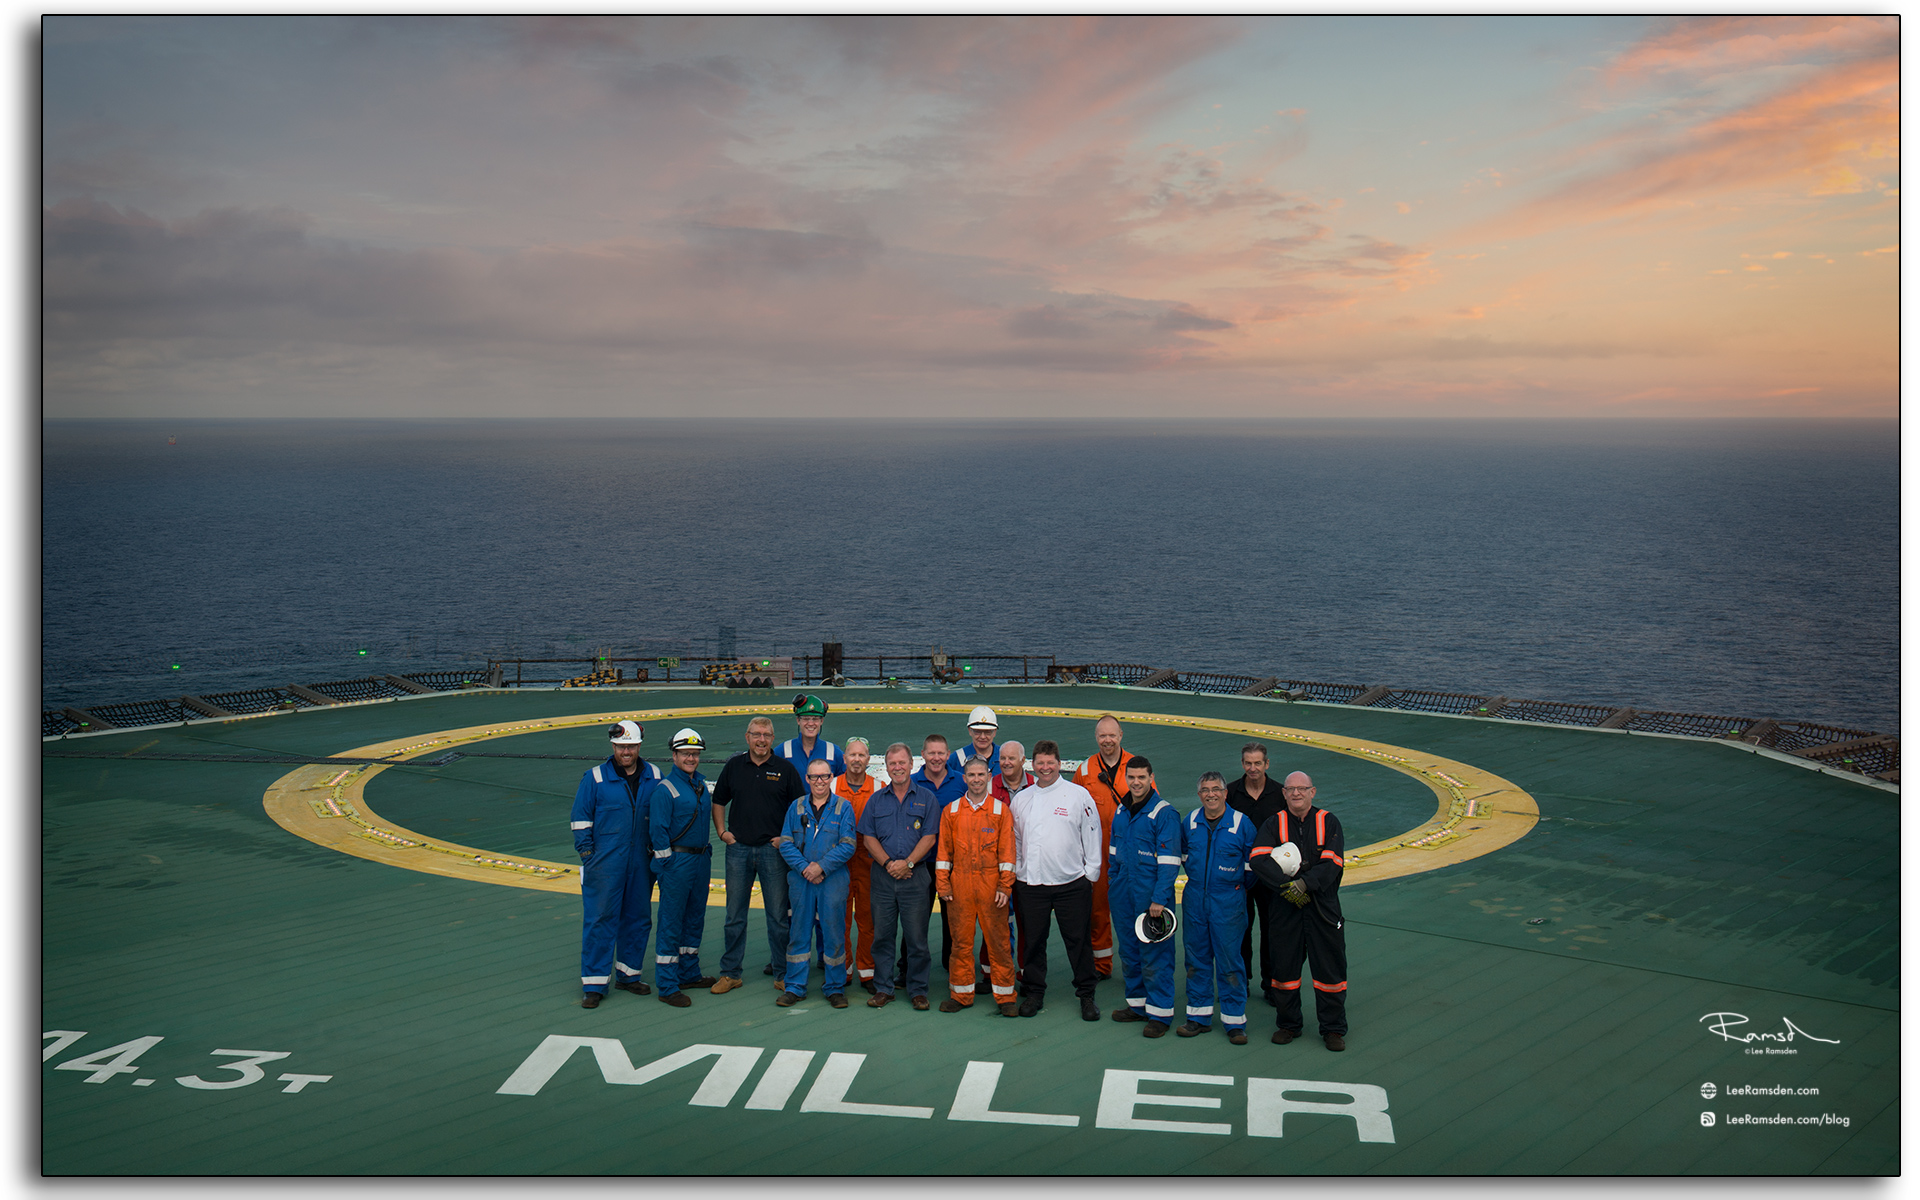 BP Miller, decommissioning, offshore, Petrofac, core crew, photo my lee ramsden